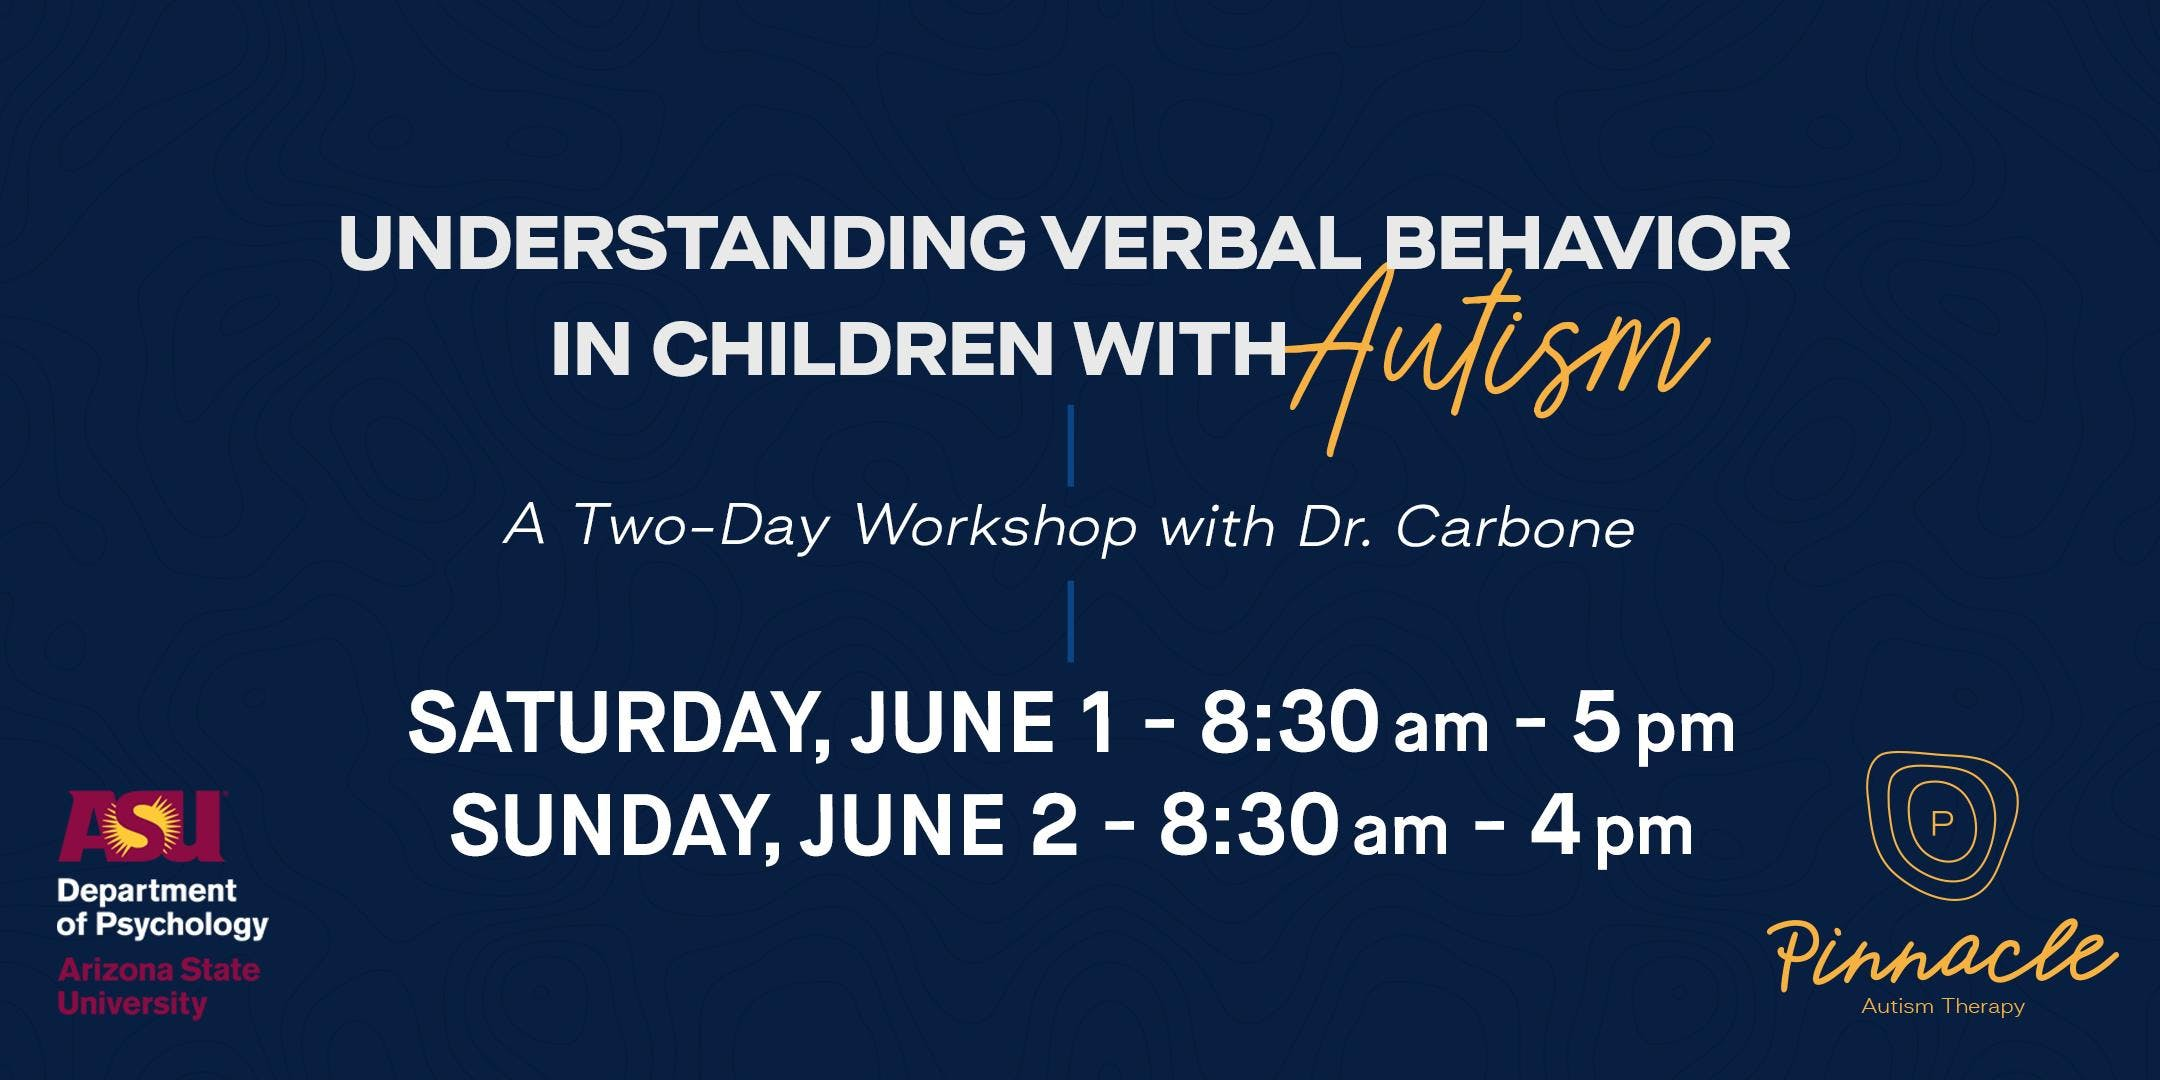 A Two-Day Workshop with Dr. Carbone